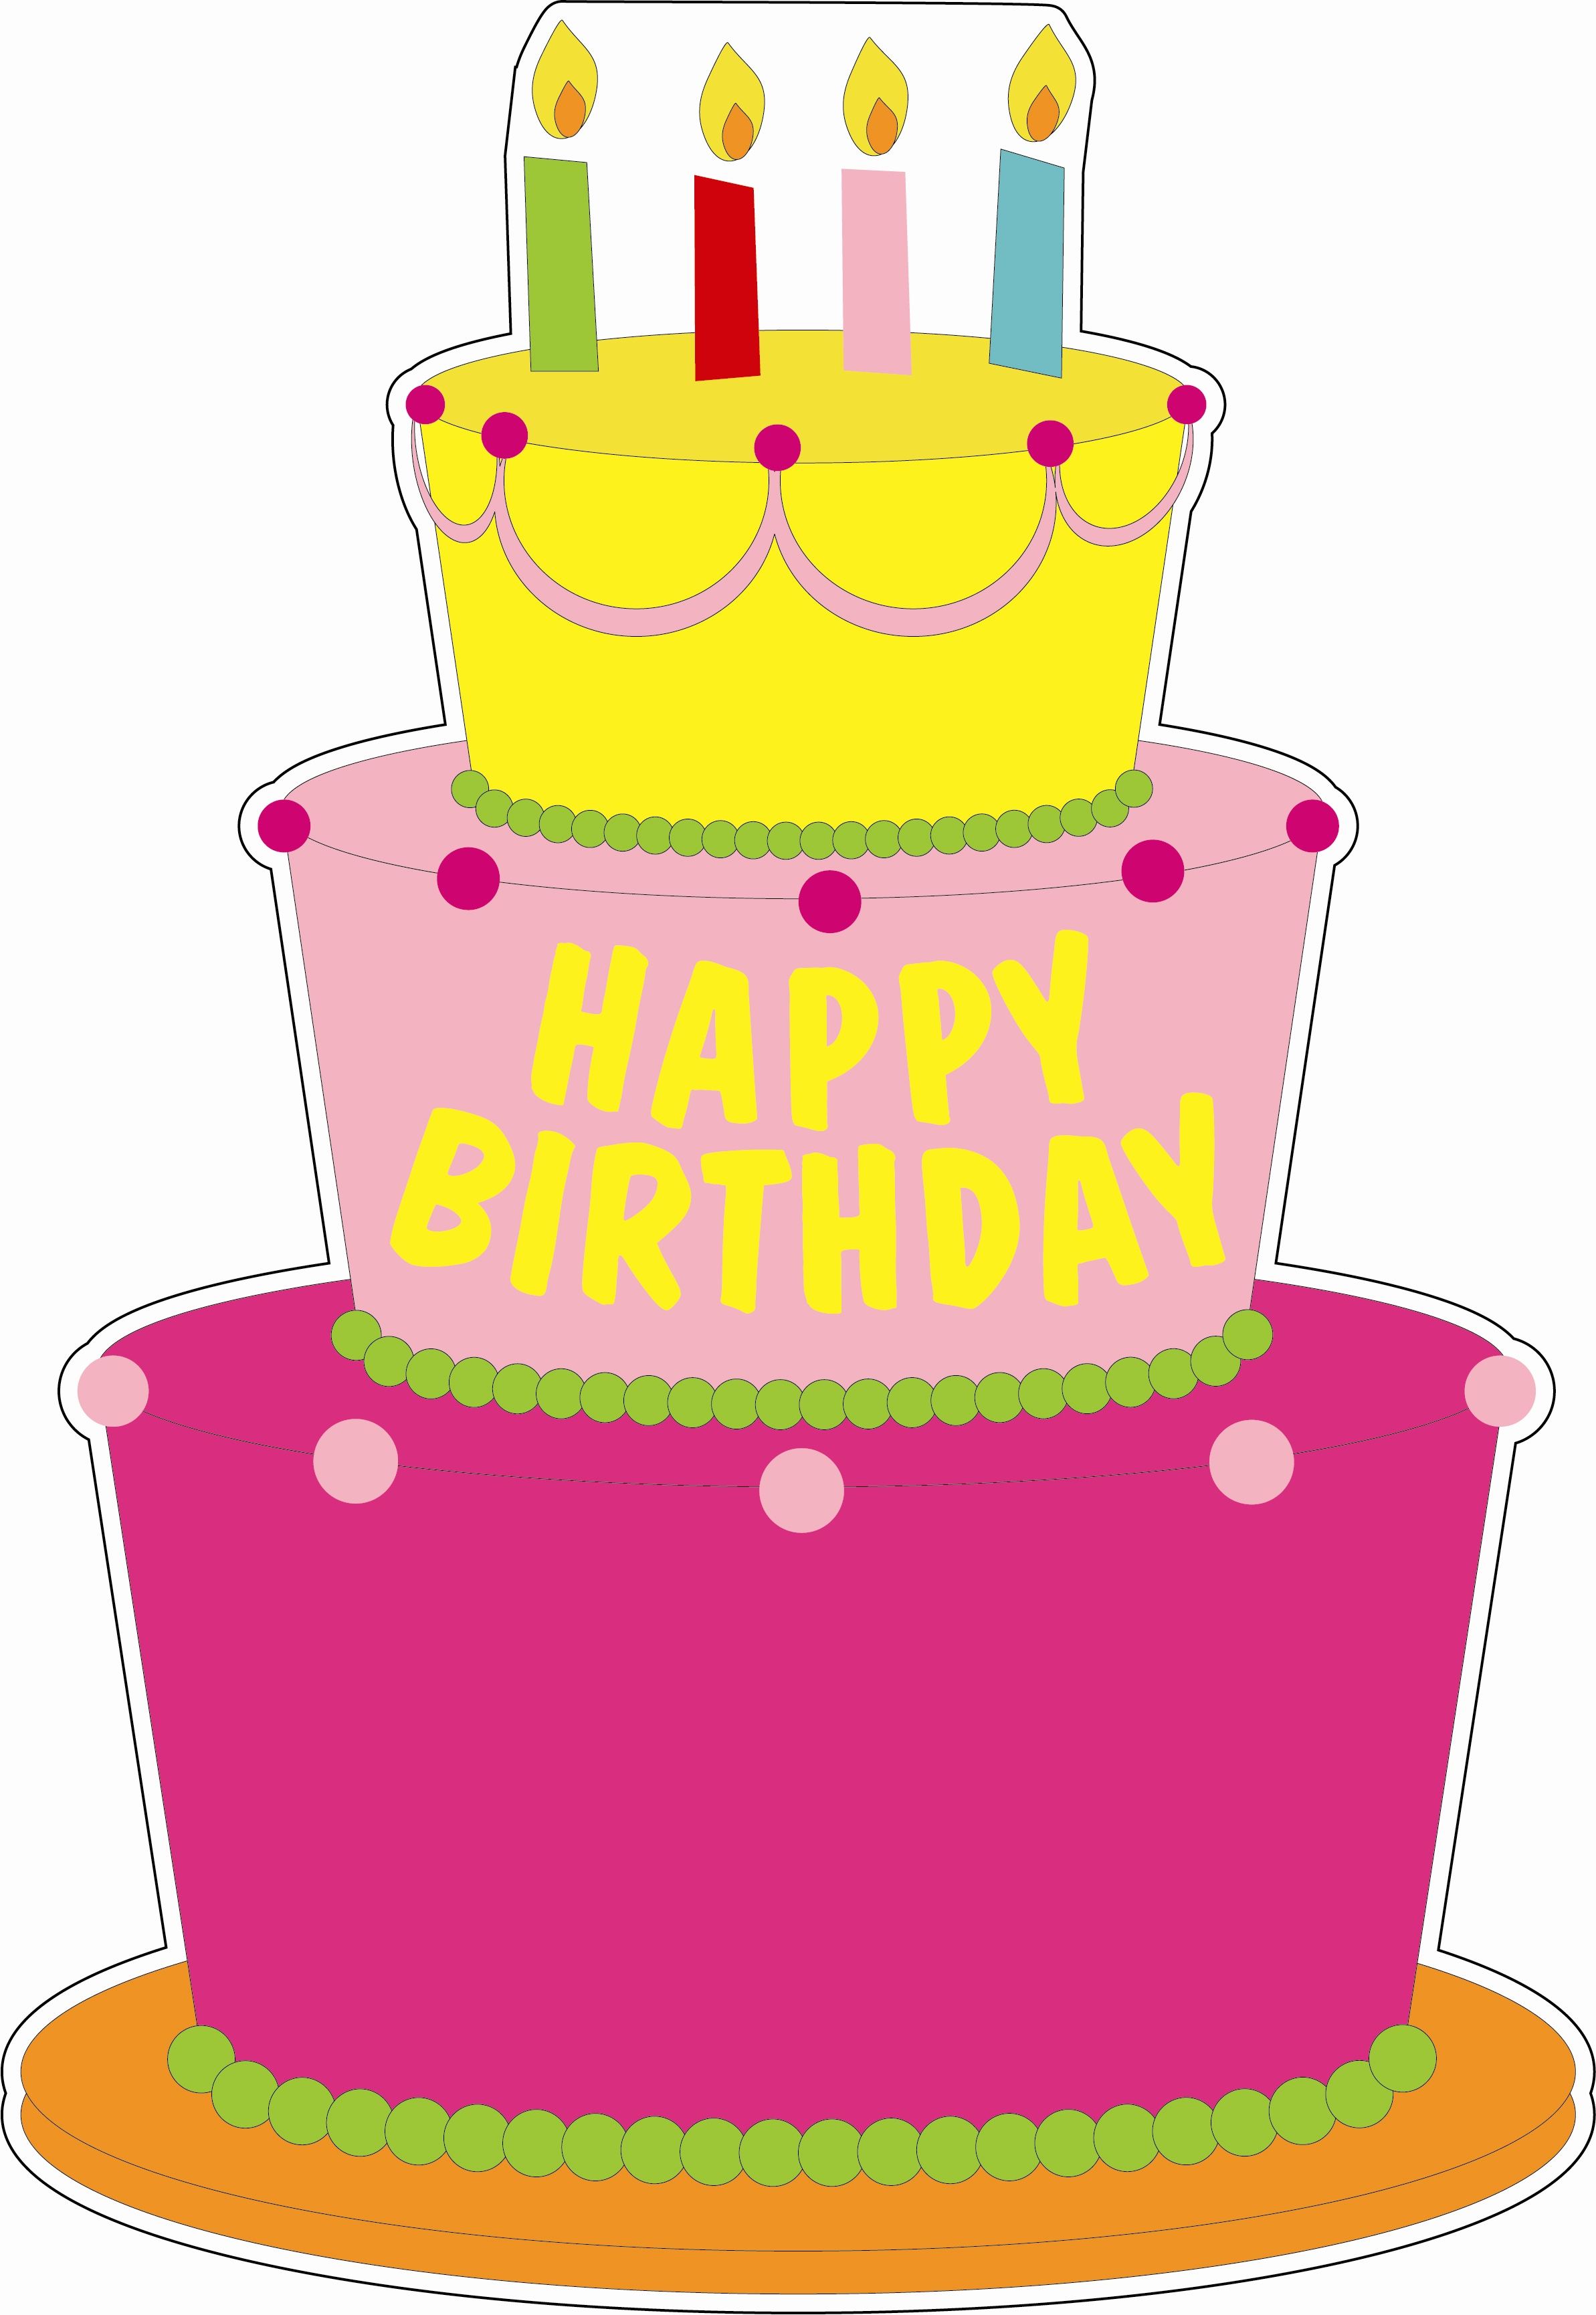 Birthday Cakes Cartoons Images